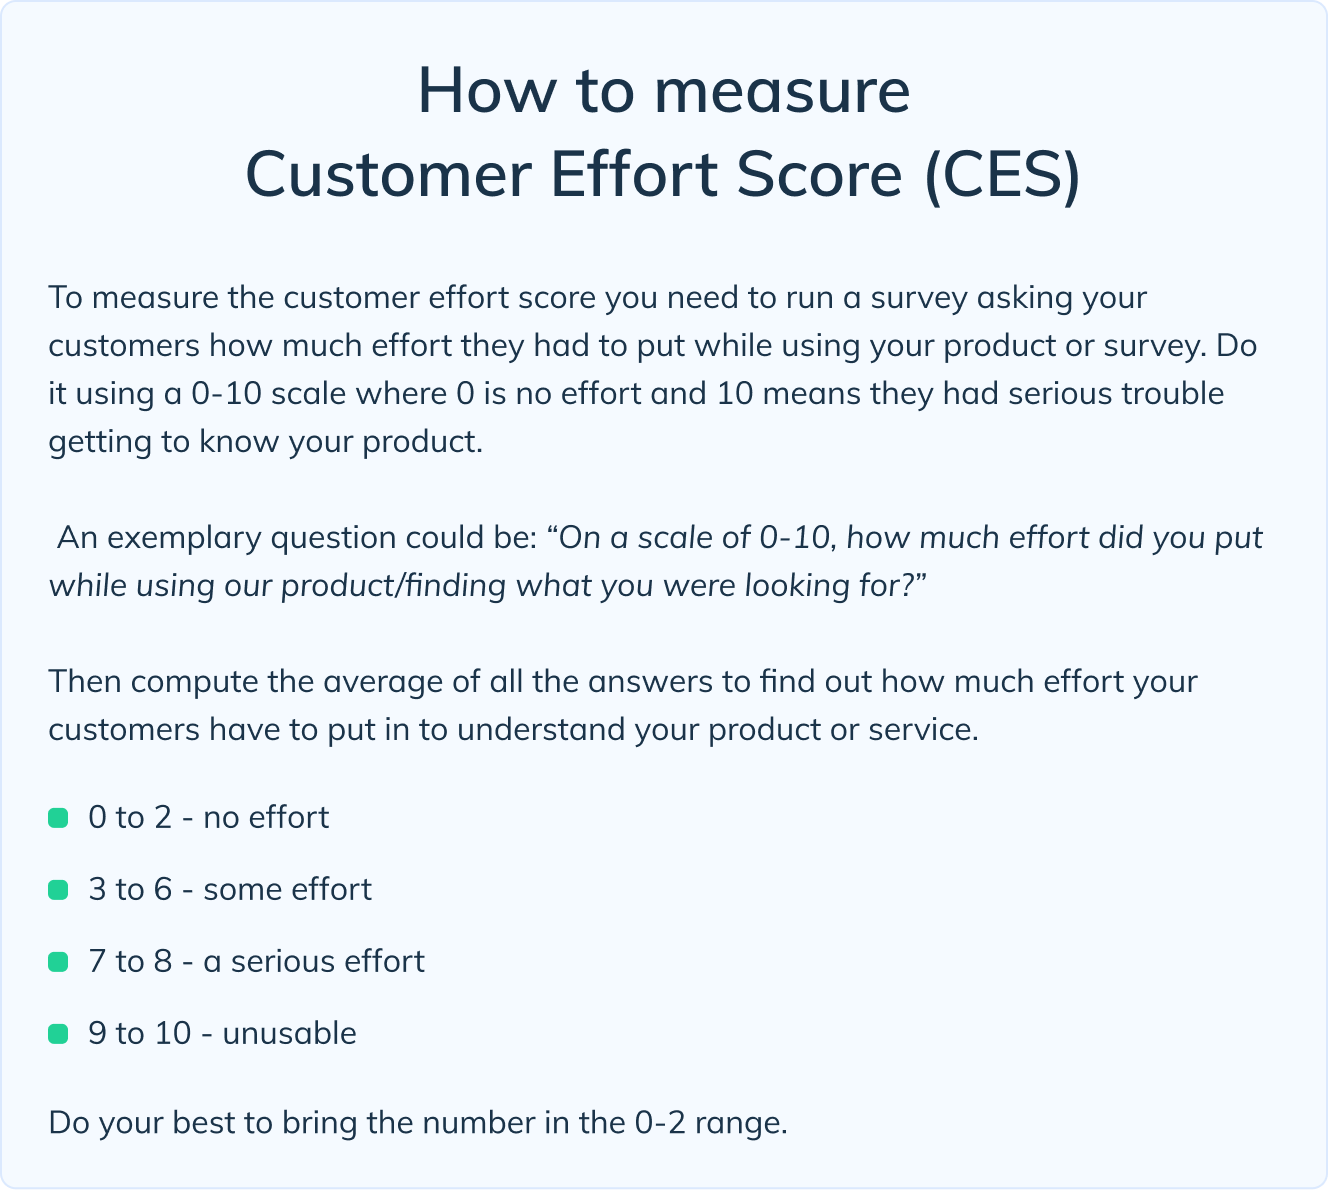 How to measure CES